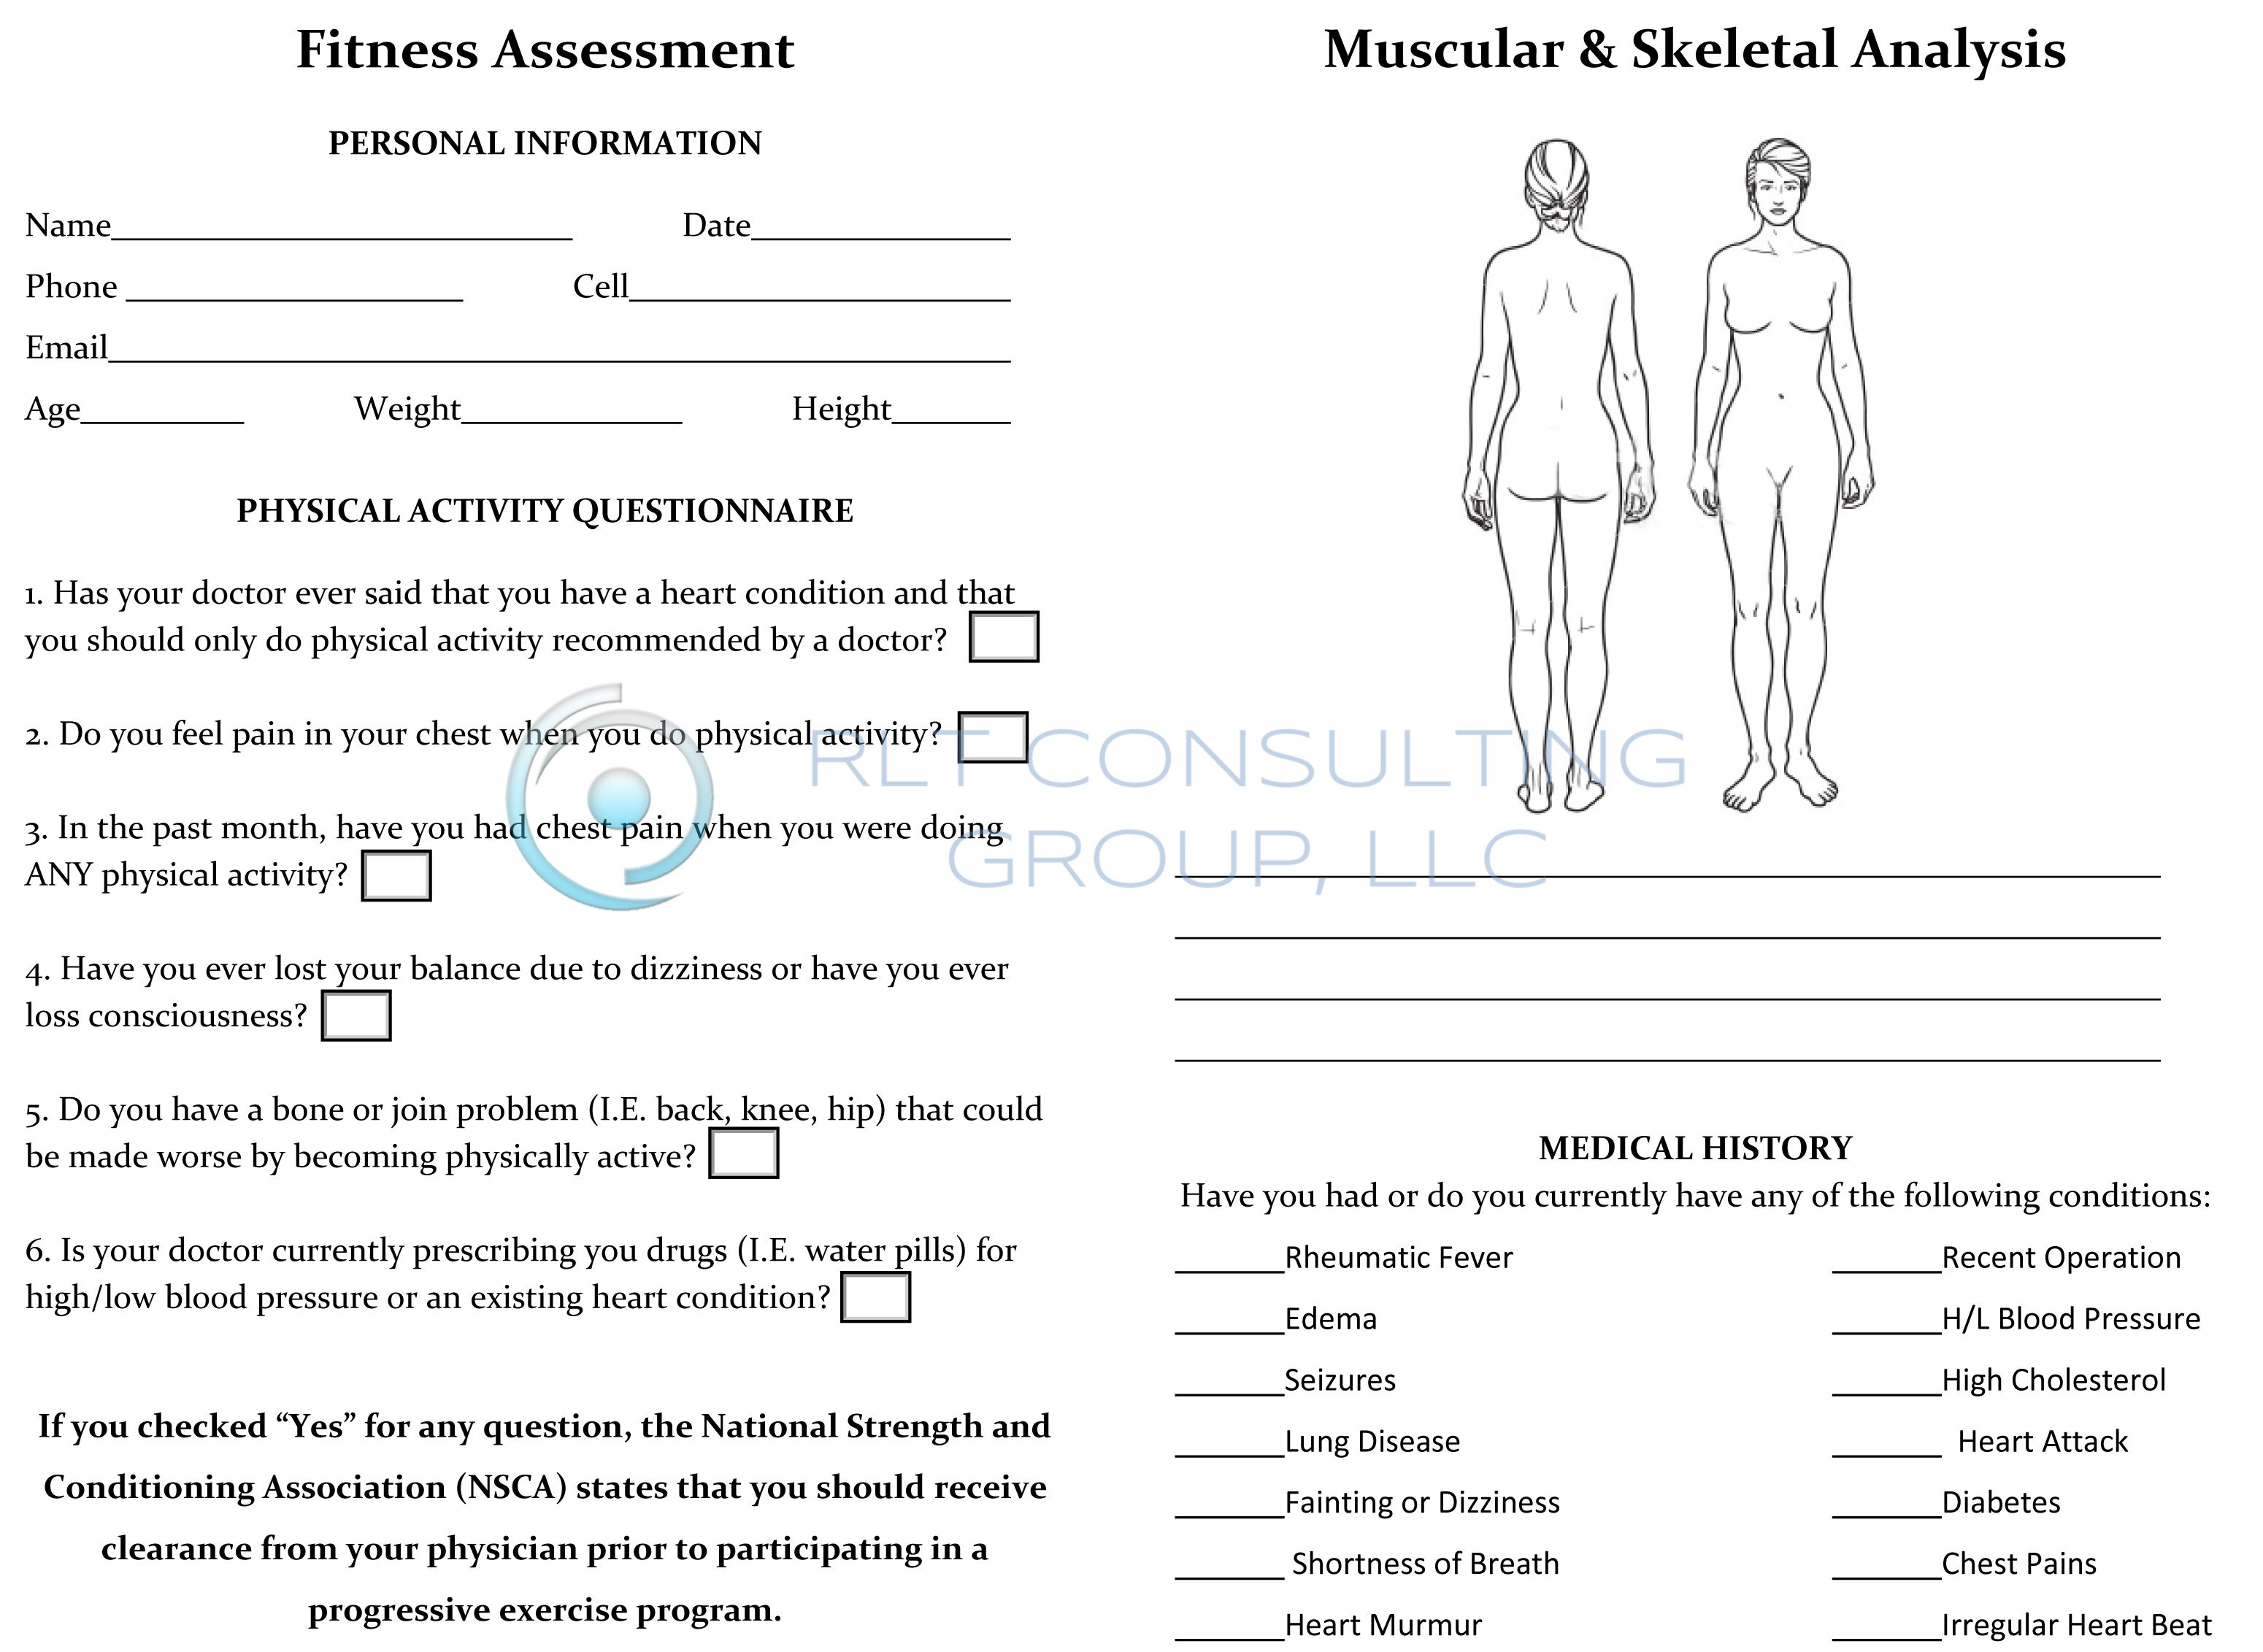 Fitness Assessment Form for Women back by RLT Consulting Group – Fitness Assessment Form